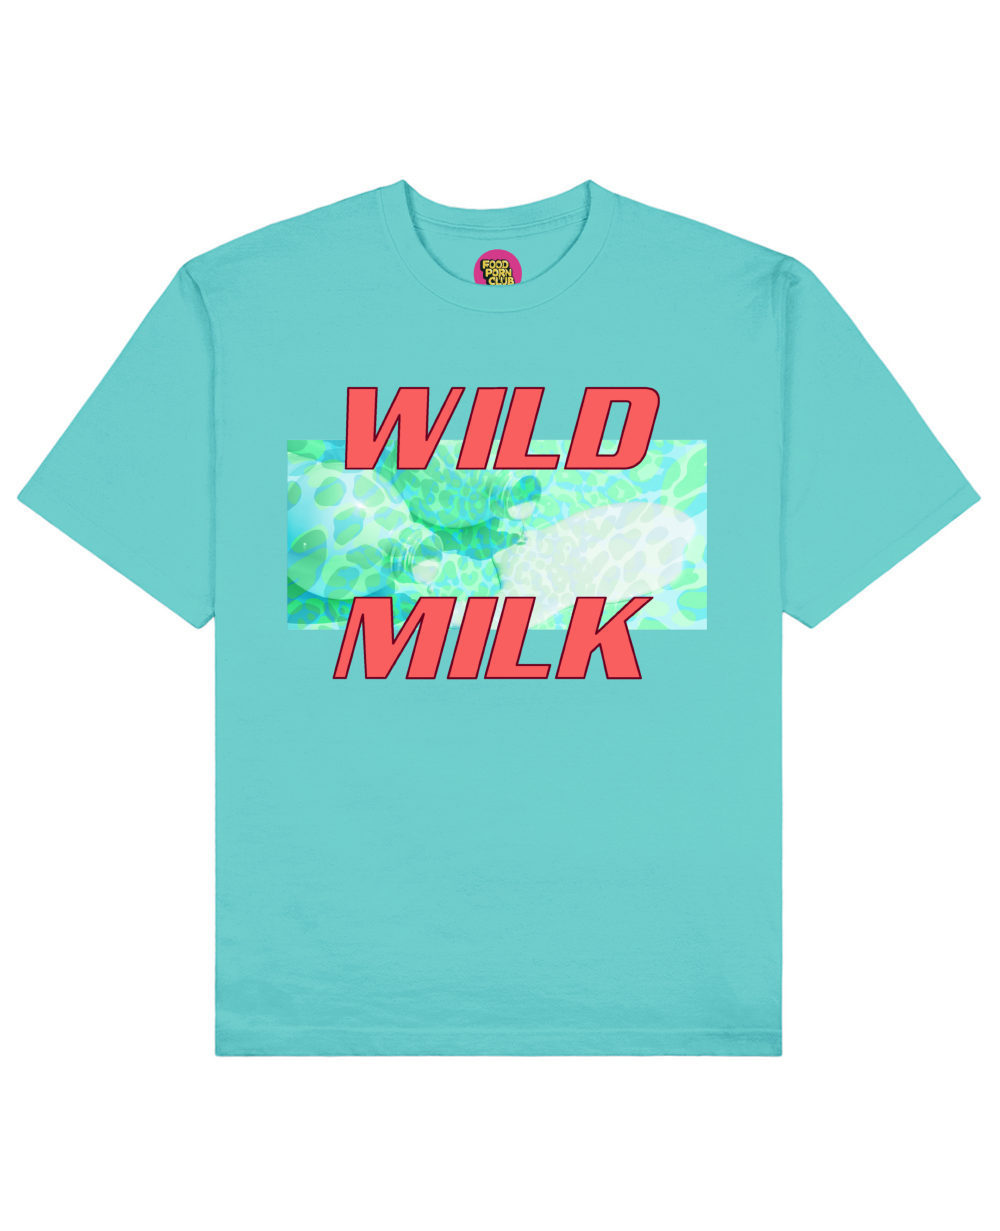 Wild Milk Print T-Shirt in Aqua Blue - T-Shirts - FOOD PORN CLUB - BRANMA